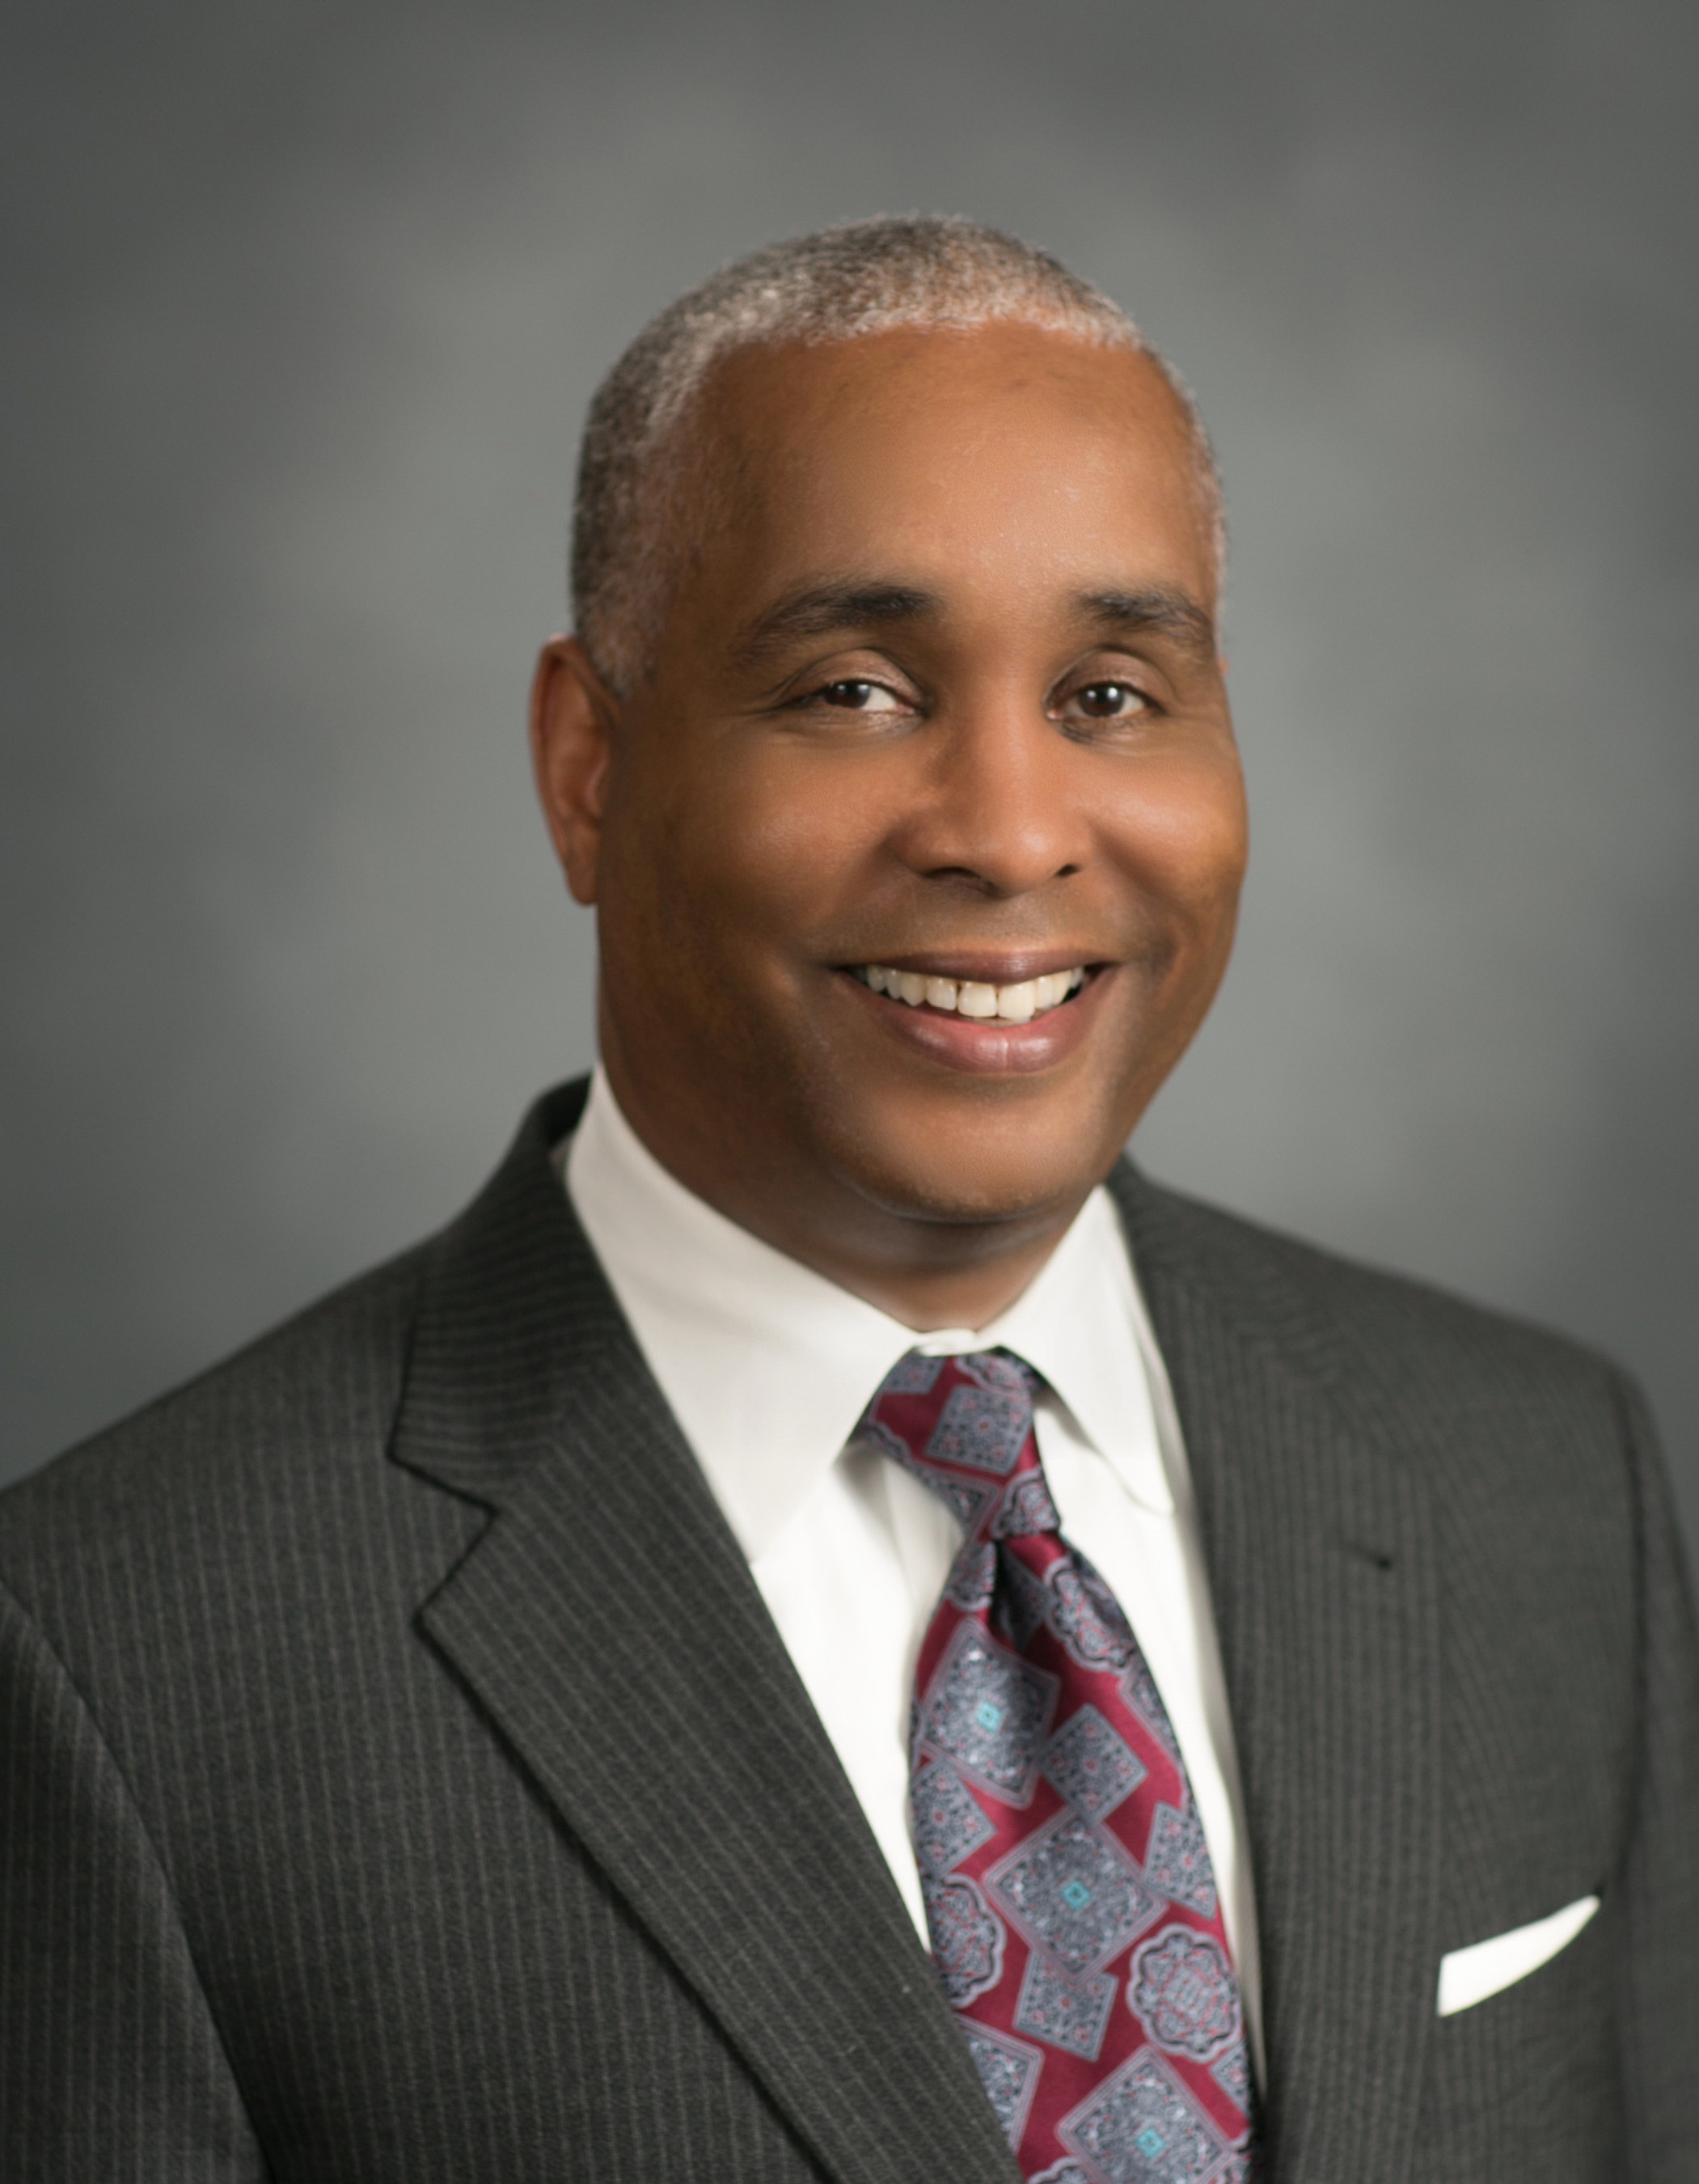 Gregory Dyson, ICMA-RC Senior Vice President, Chief Operations and Chief Marketing Officer, has been awarded the 2015 National Forum for Black Public Administrators Leadership Award.